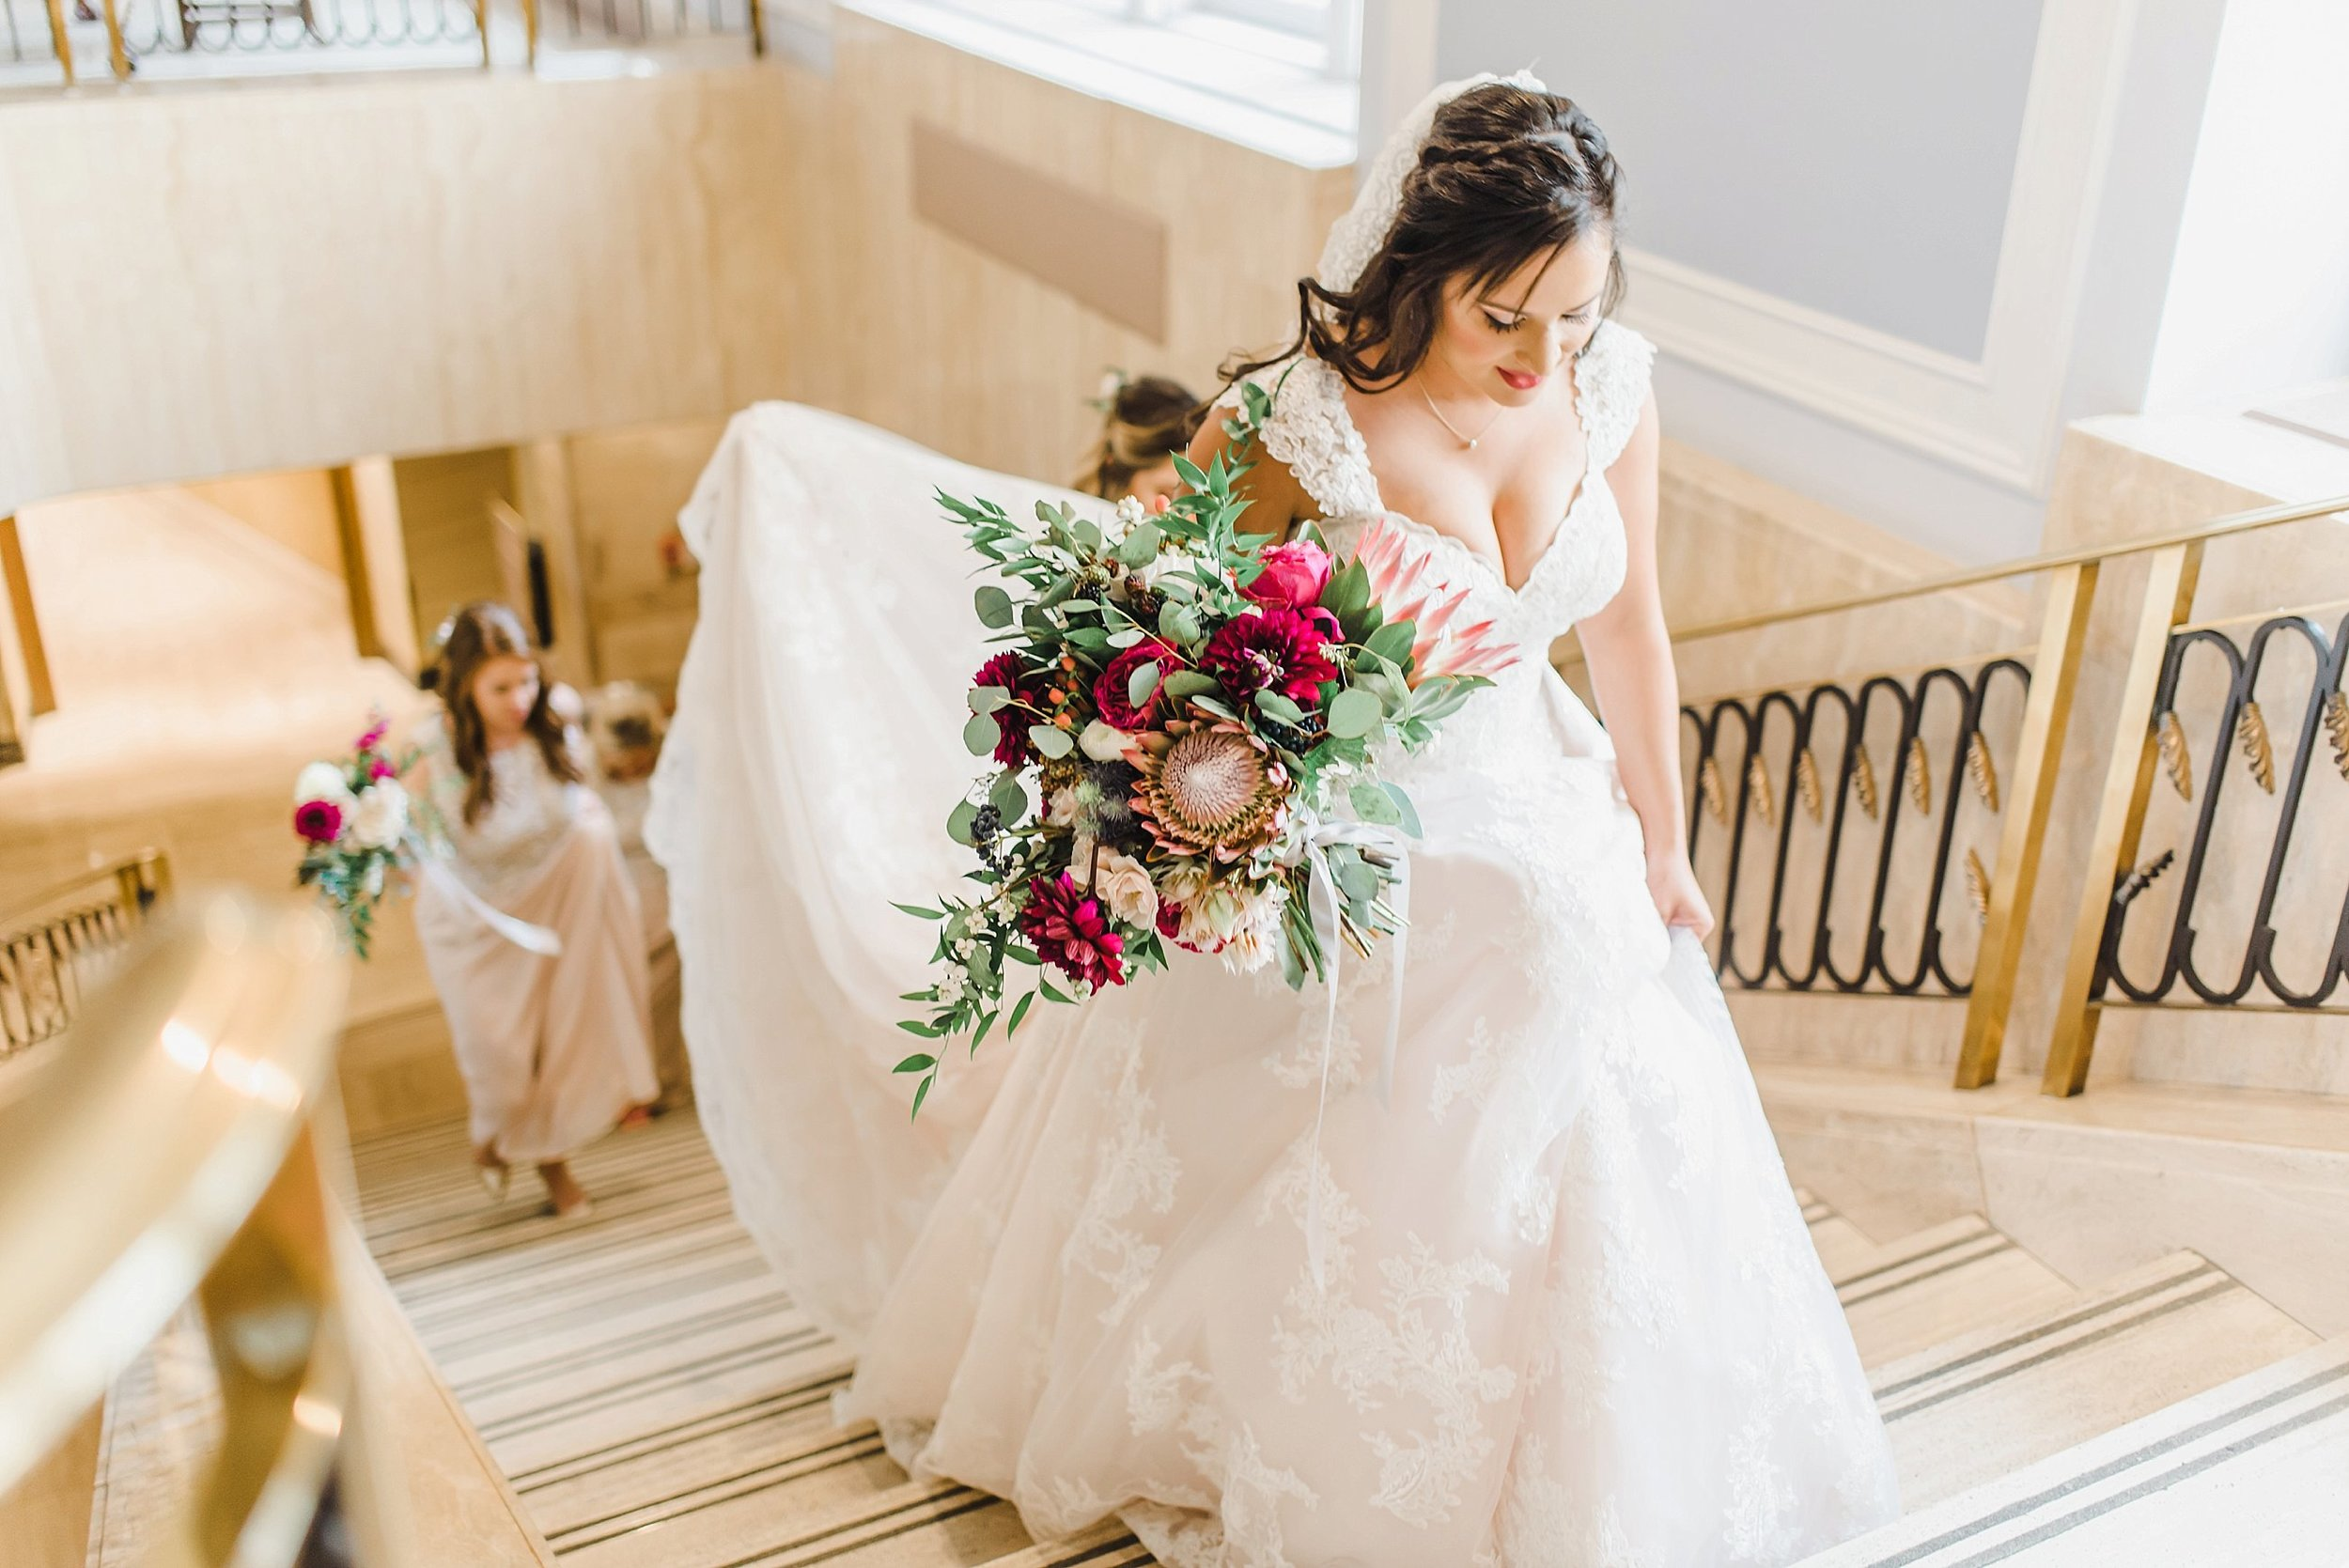 light airy indie fine art ottawa wedding photographer | Ali and Batoul Photography_1581.jpg